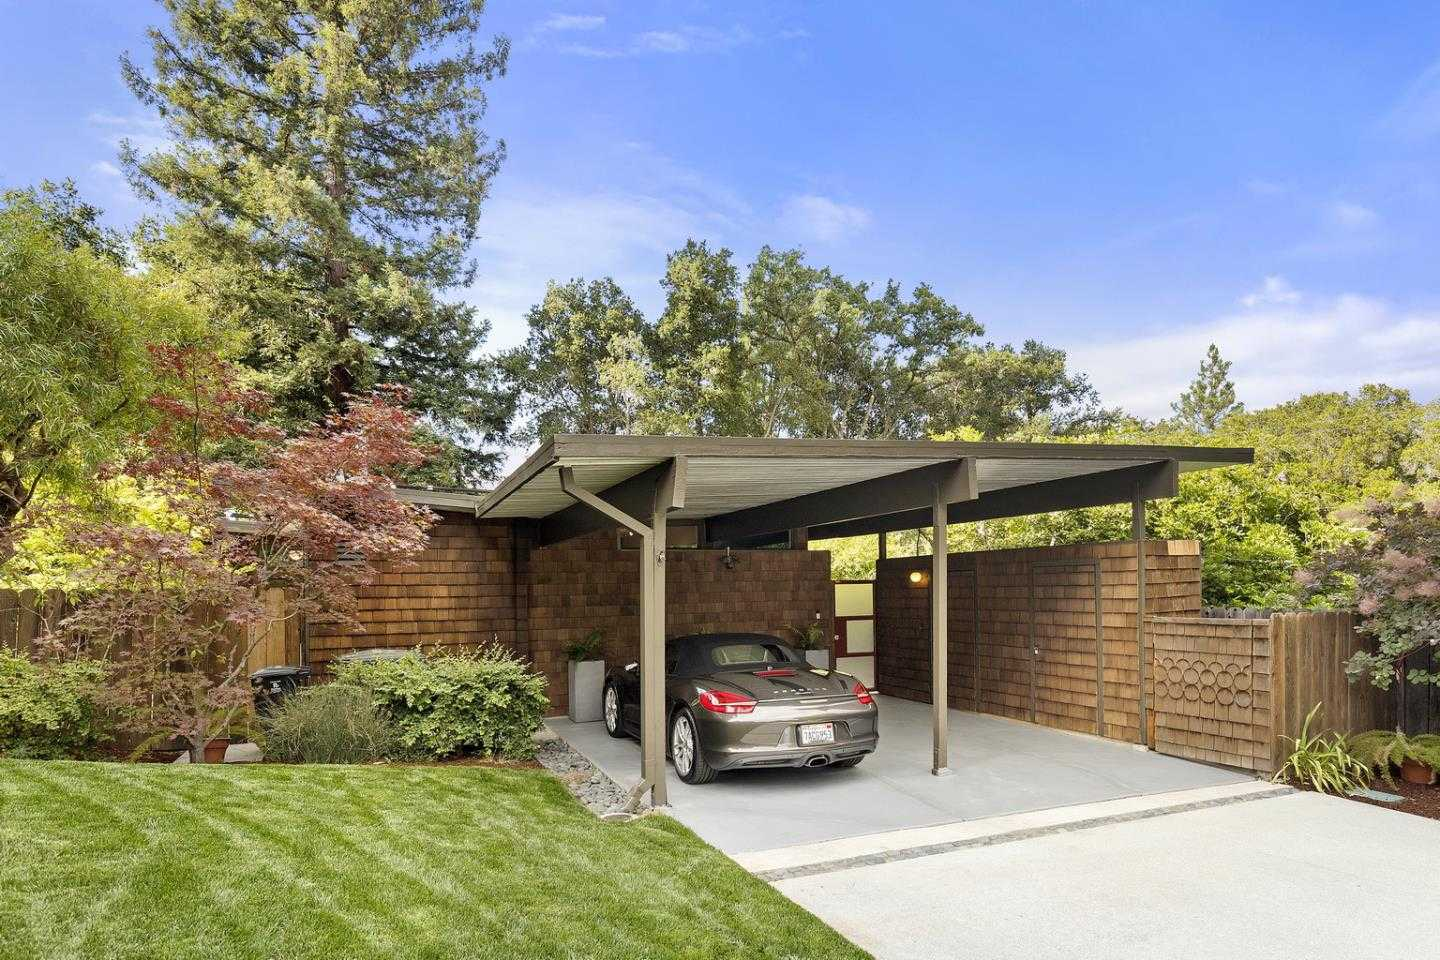 $1,995,000 - 3Br/2Ba -  for Sale in Portola Valley